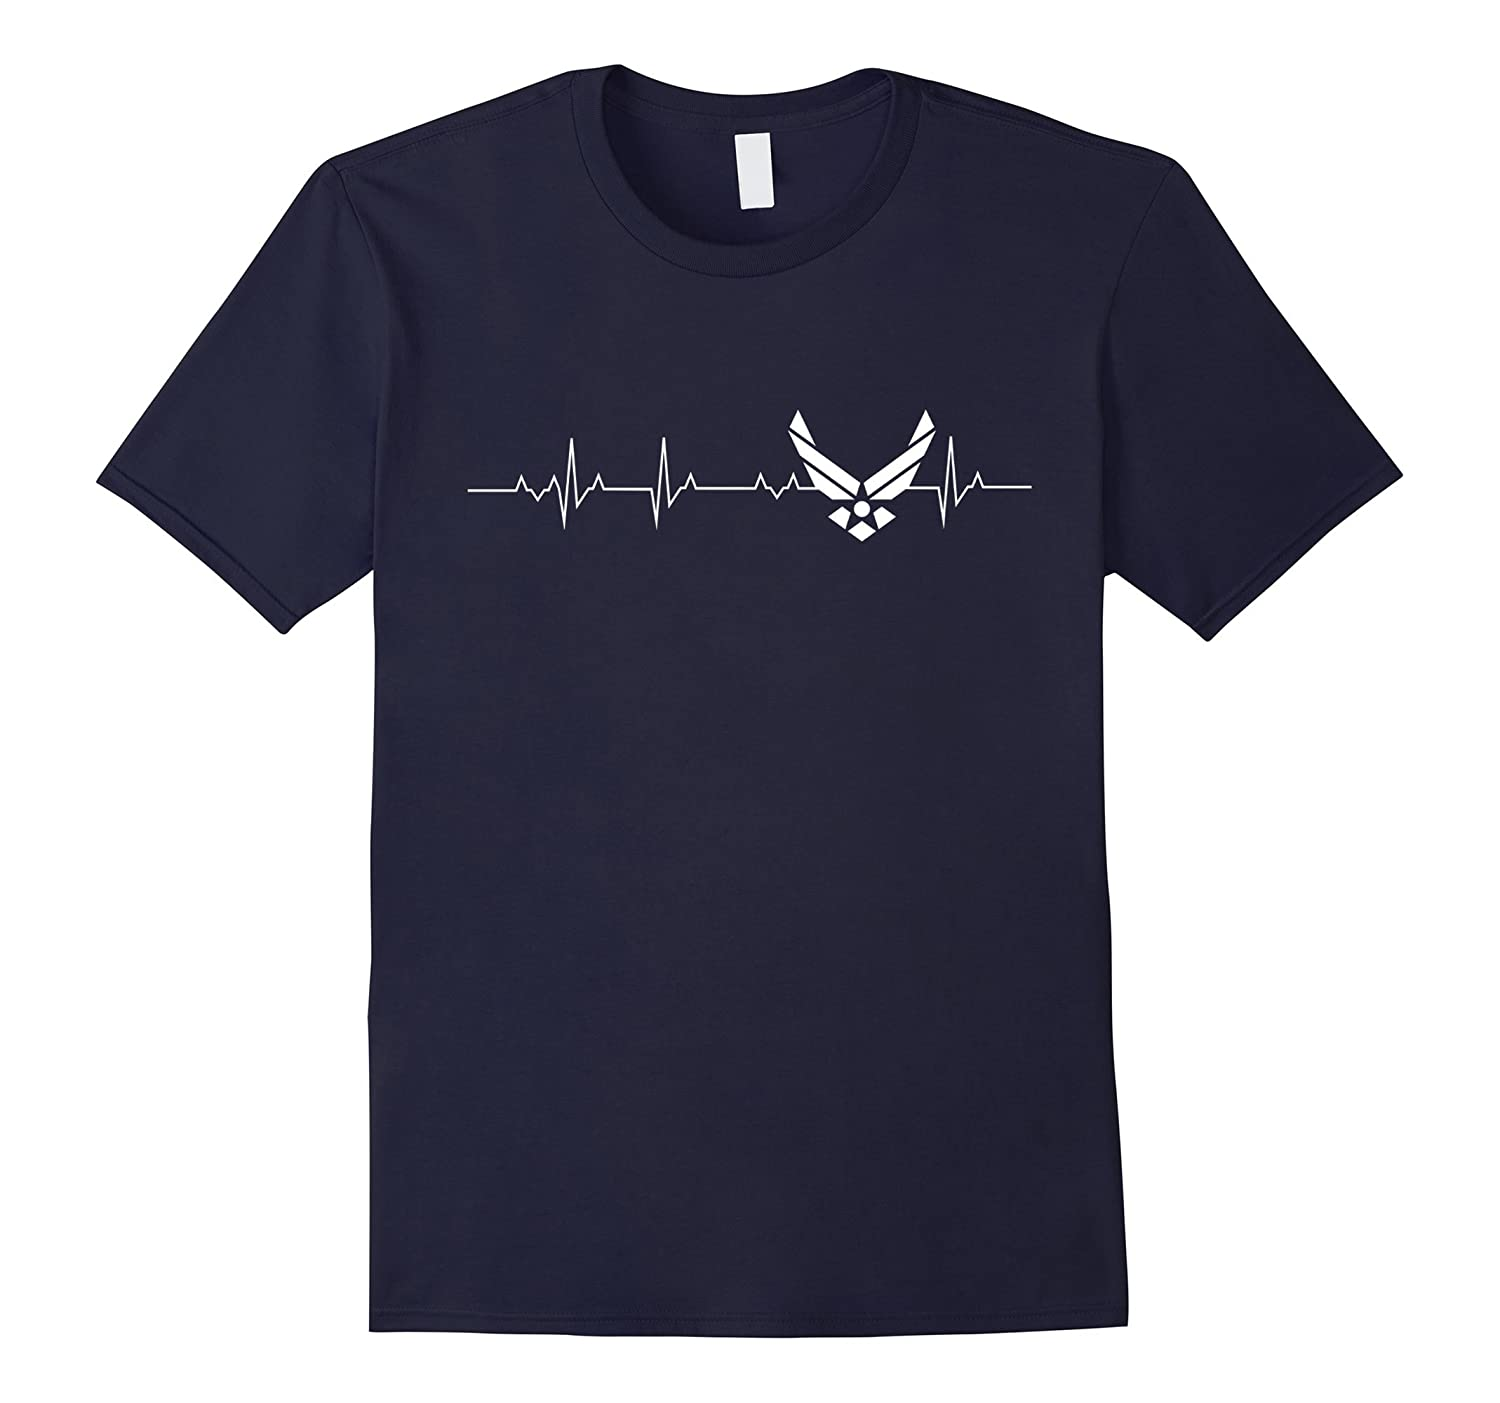 AirForce Tshirt i love AirForce heart beat-TH